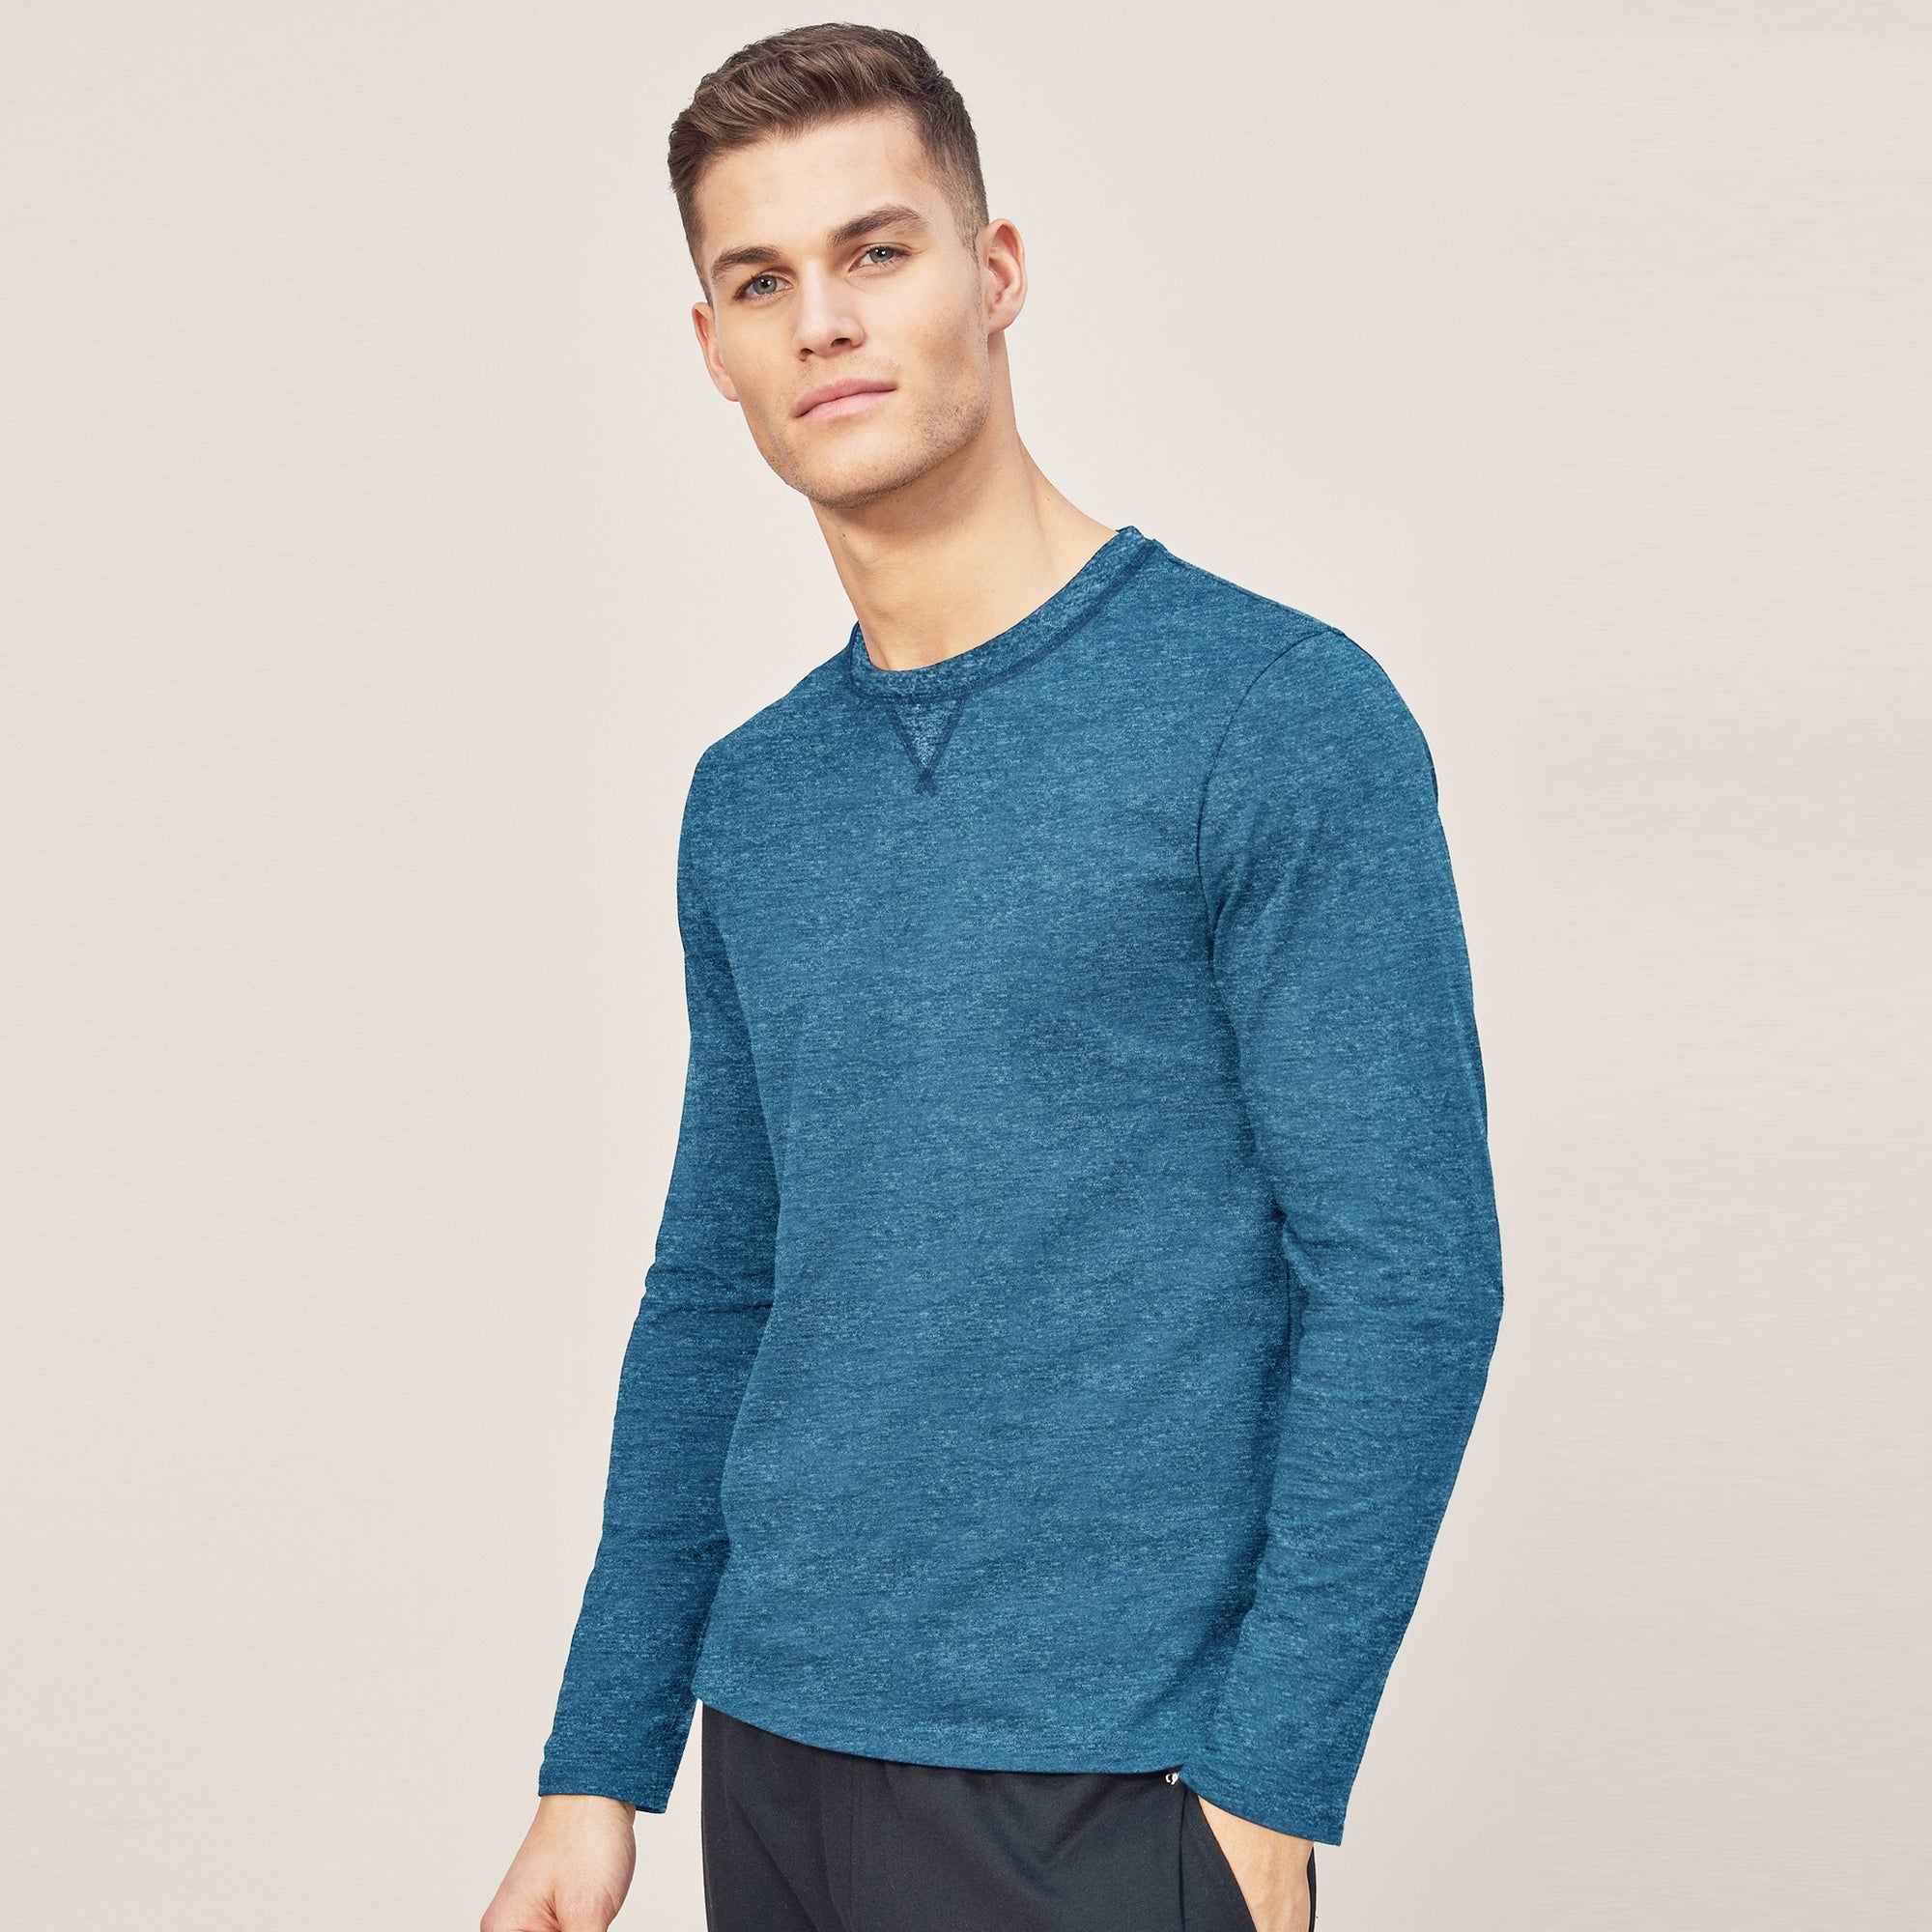 Beverly Hills Single Jersey Long Sleeve Tee Shirt For Men-Dark Sky Melange-BE8899